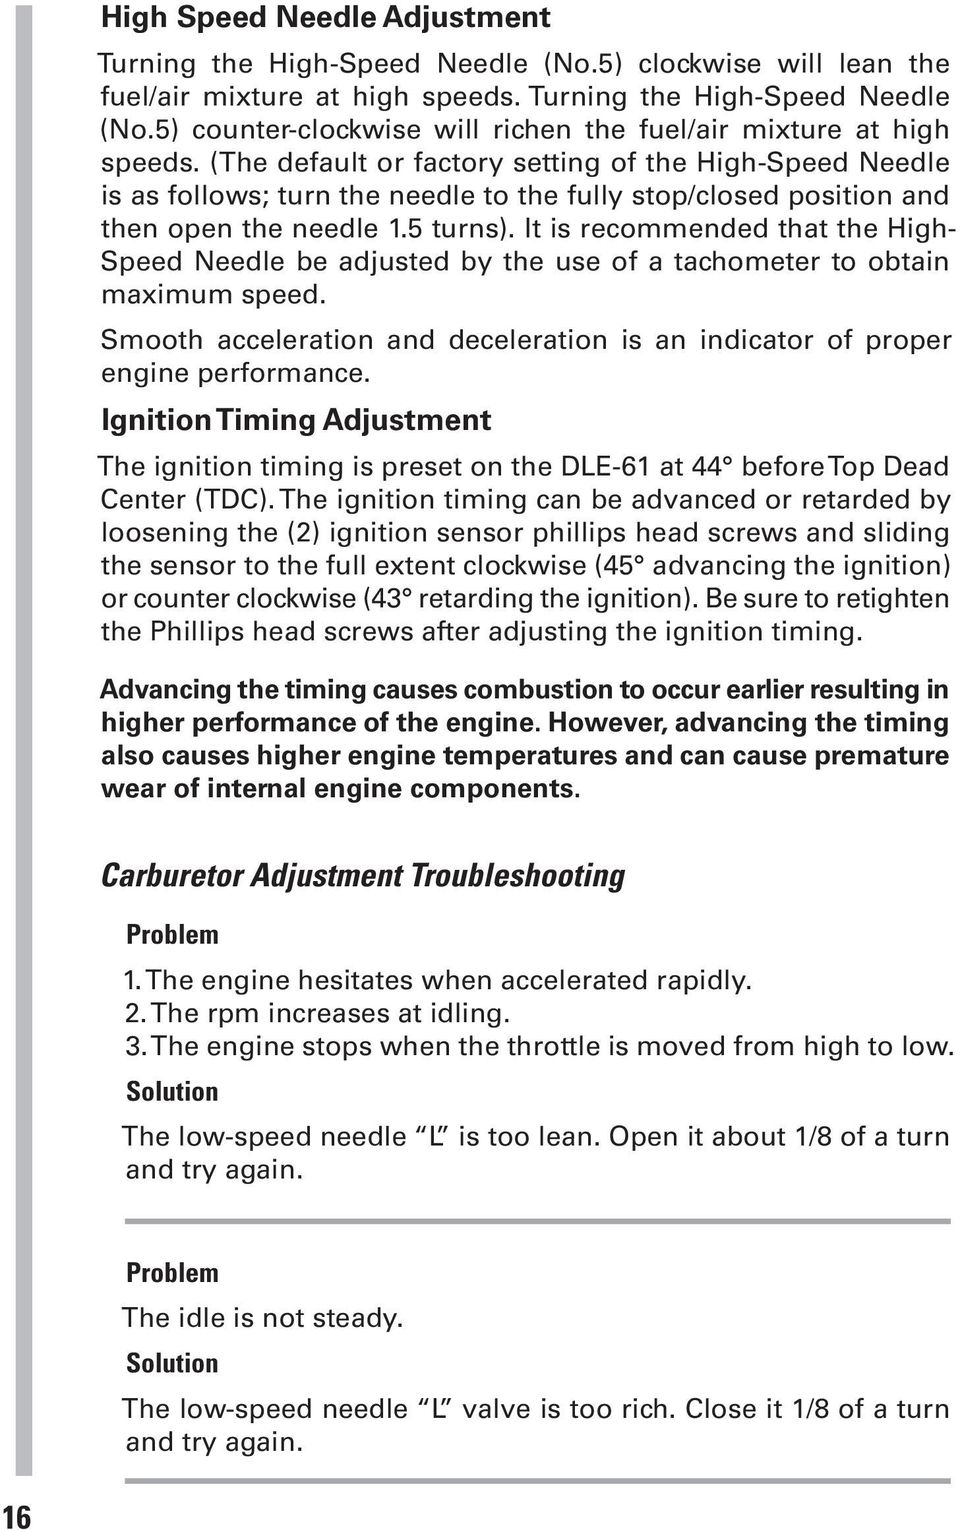 DLE-61  Operator s Manual  Specifications  Displacement: Performance